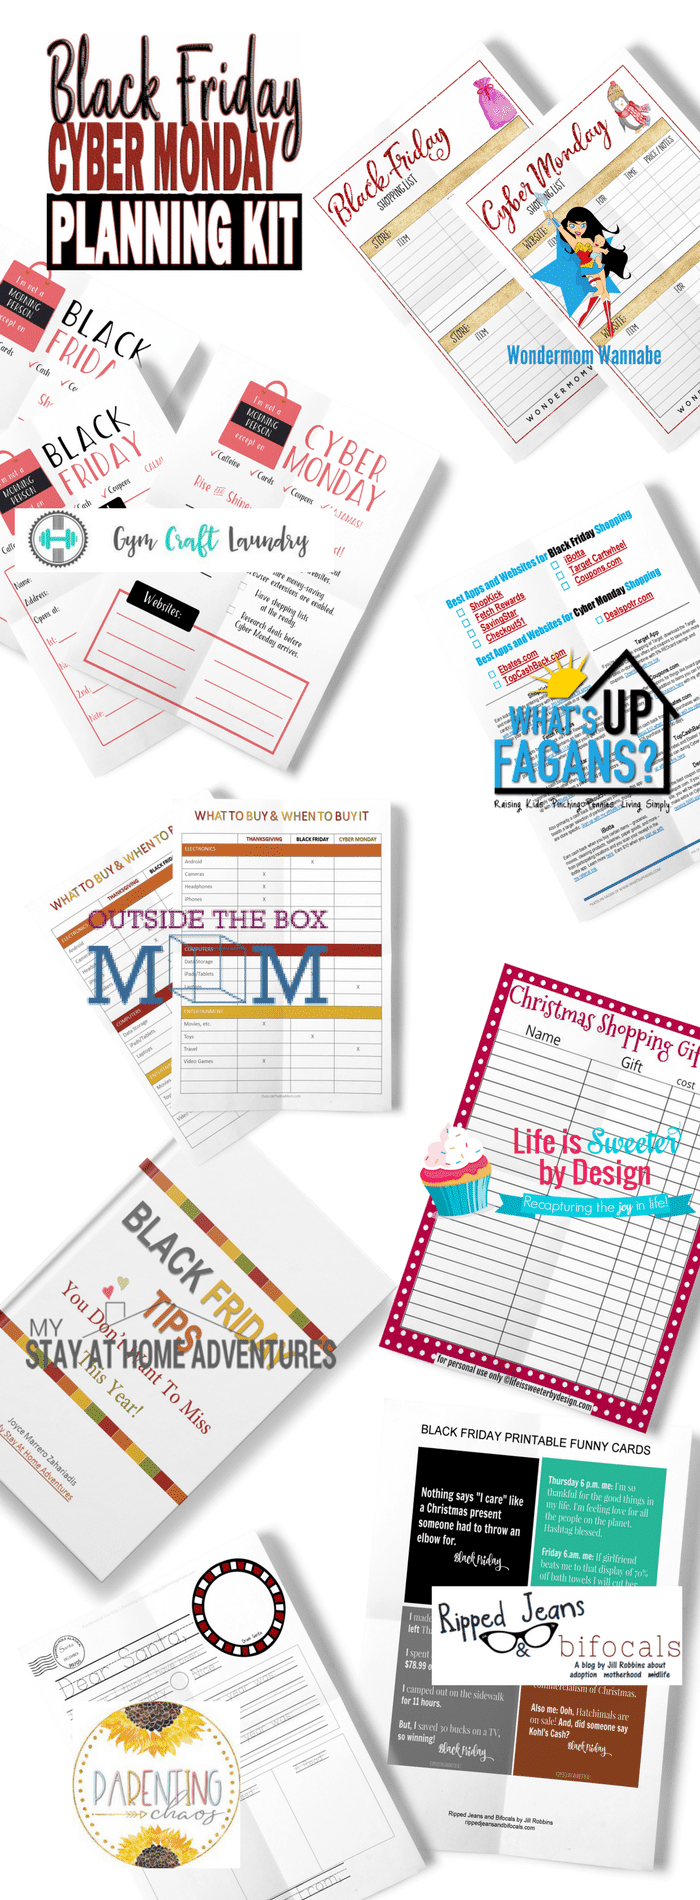 printables with title text reading Black Friday Cyber Monday Planning Kit